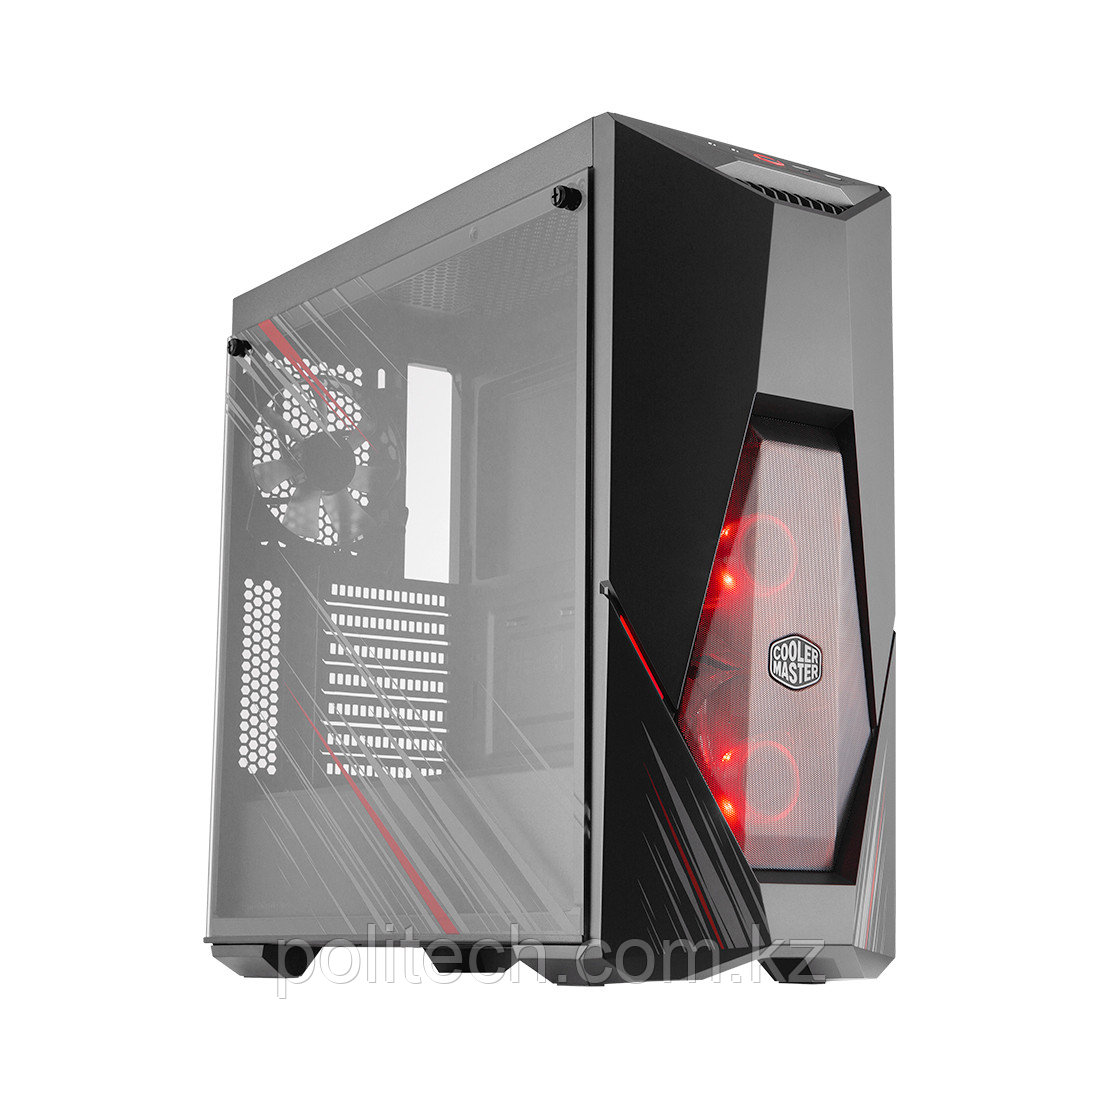 Компьютерный корпус Cooler Master MasterBox K500 Phantom Gaming Edition без Б/П